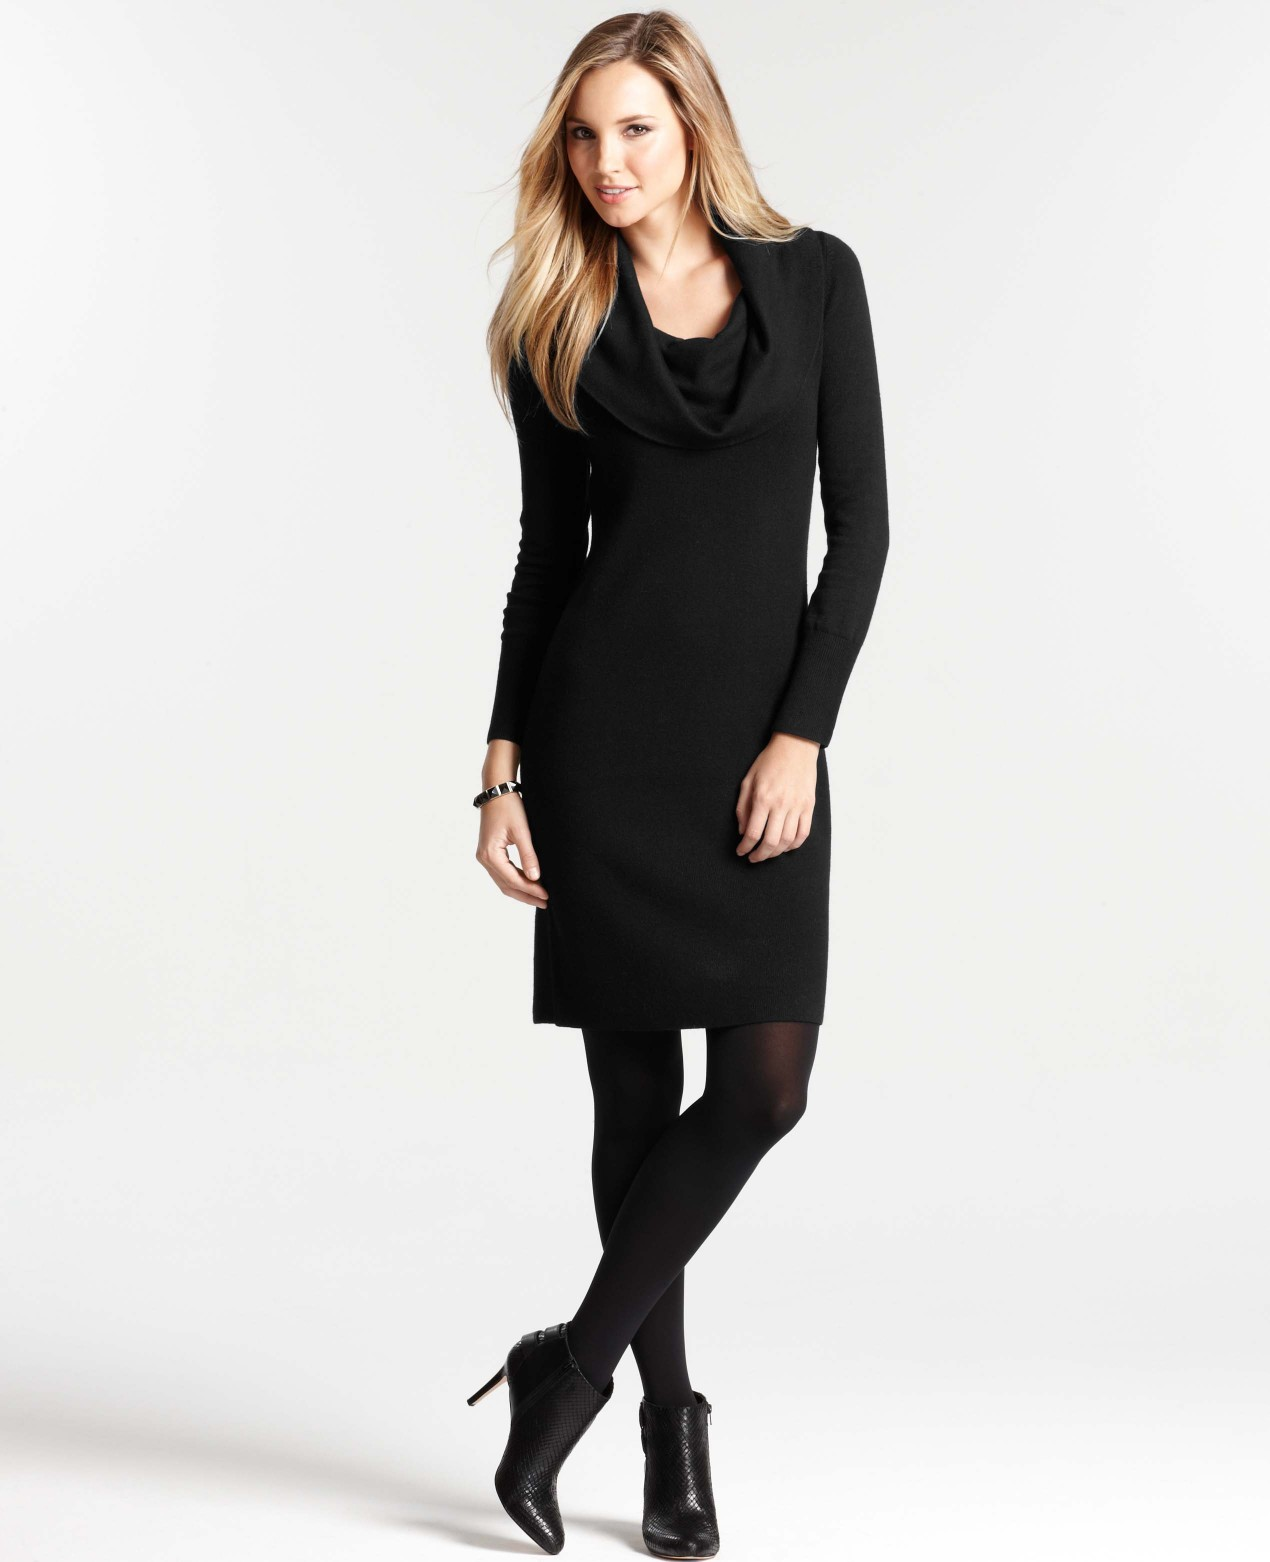 Ann taylor Petite Cowl Neck Sweater Dress in Black | Lyst